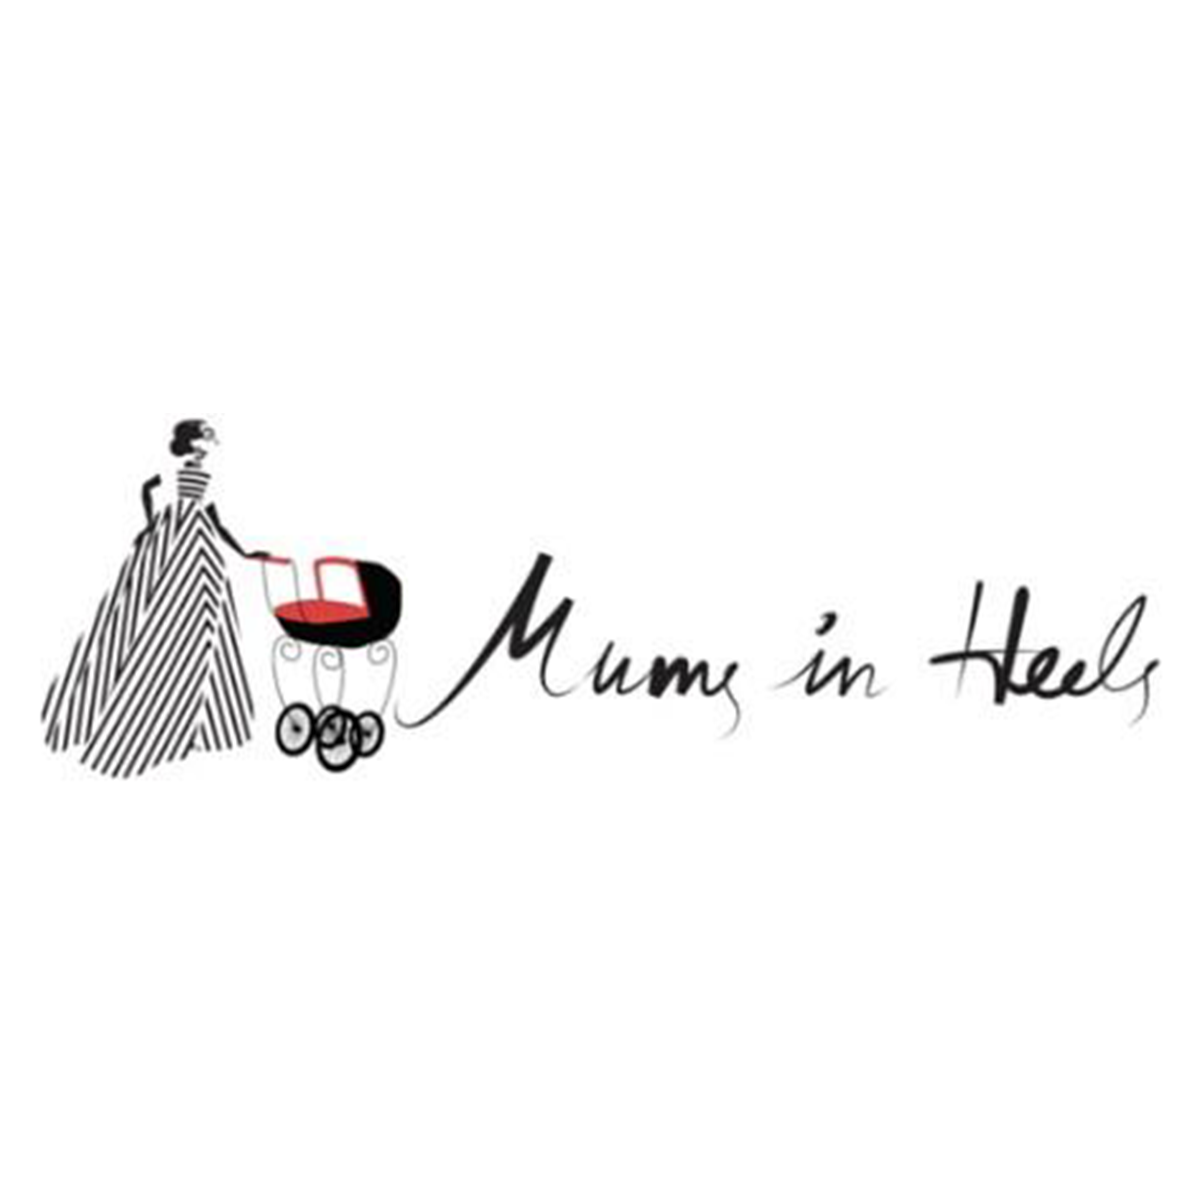 Mums in Heels - Fashion and Story Telling, A sneak peak into African Fashion & Global StyleAs an activist and mindful consumer who wants to be in some way a catalyst for such change, I've decided to start a series of Fashion Story Telling for Mums in Heels. My first partner in crime is Melanie Hanimann, the founder of the African Fashion Agency Hanimanns: